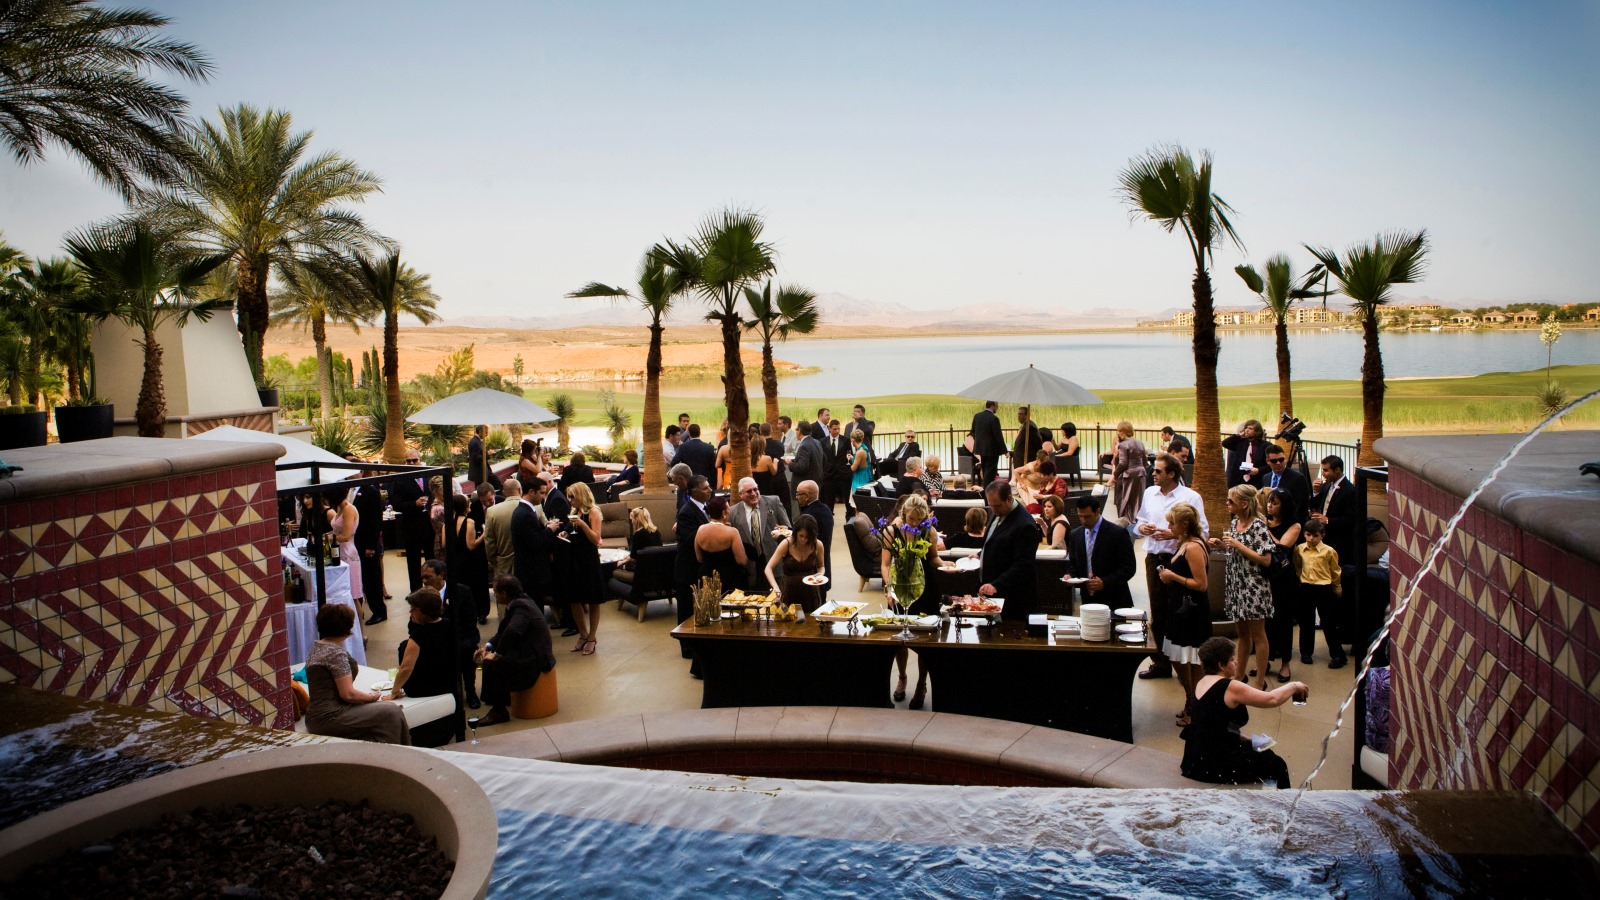 Lake Las Vegas Wedding Venues - Lotus Court Recption